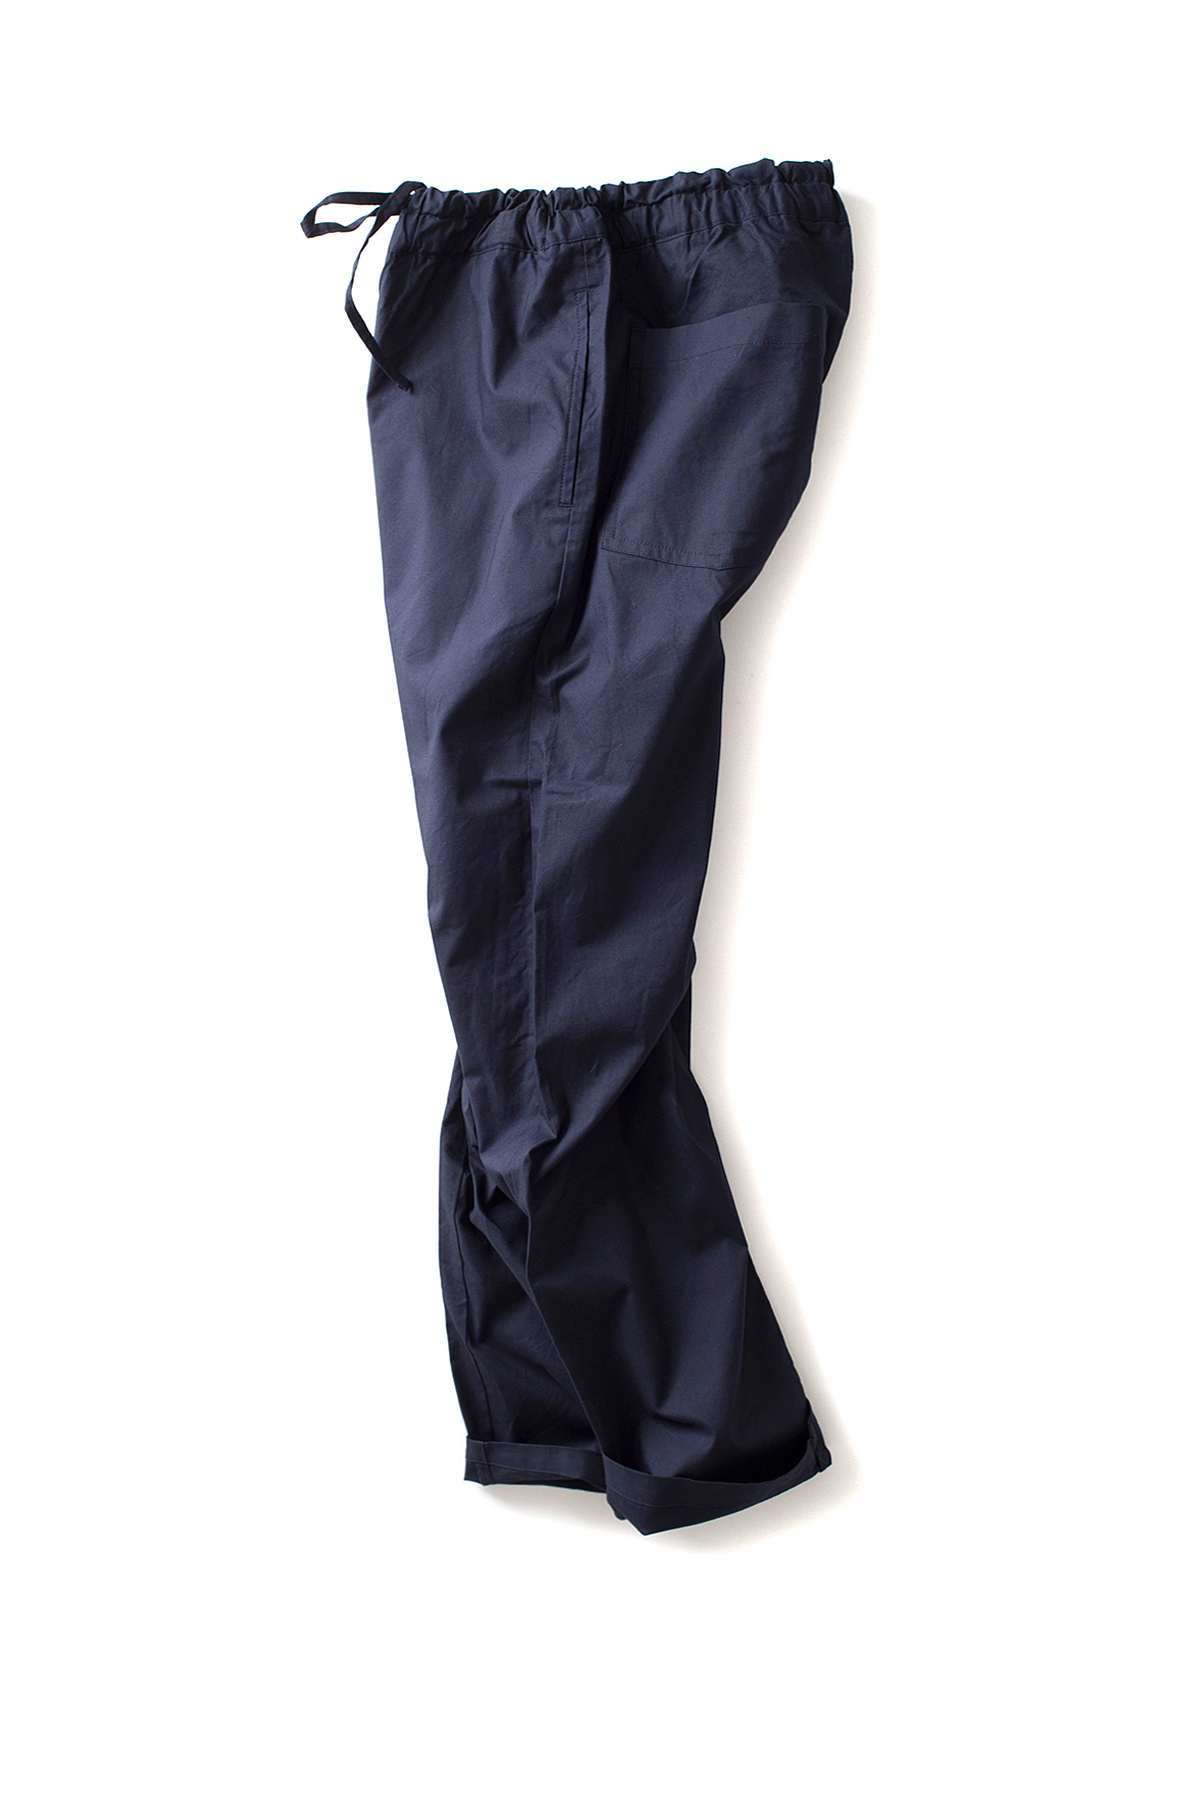 RINEN : Aligned Ox Easy Pants (Navy)